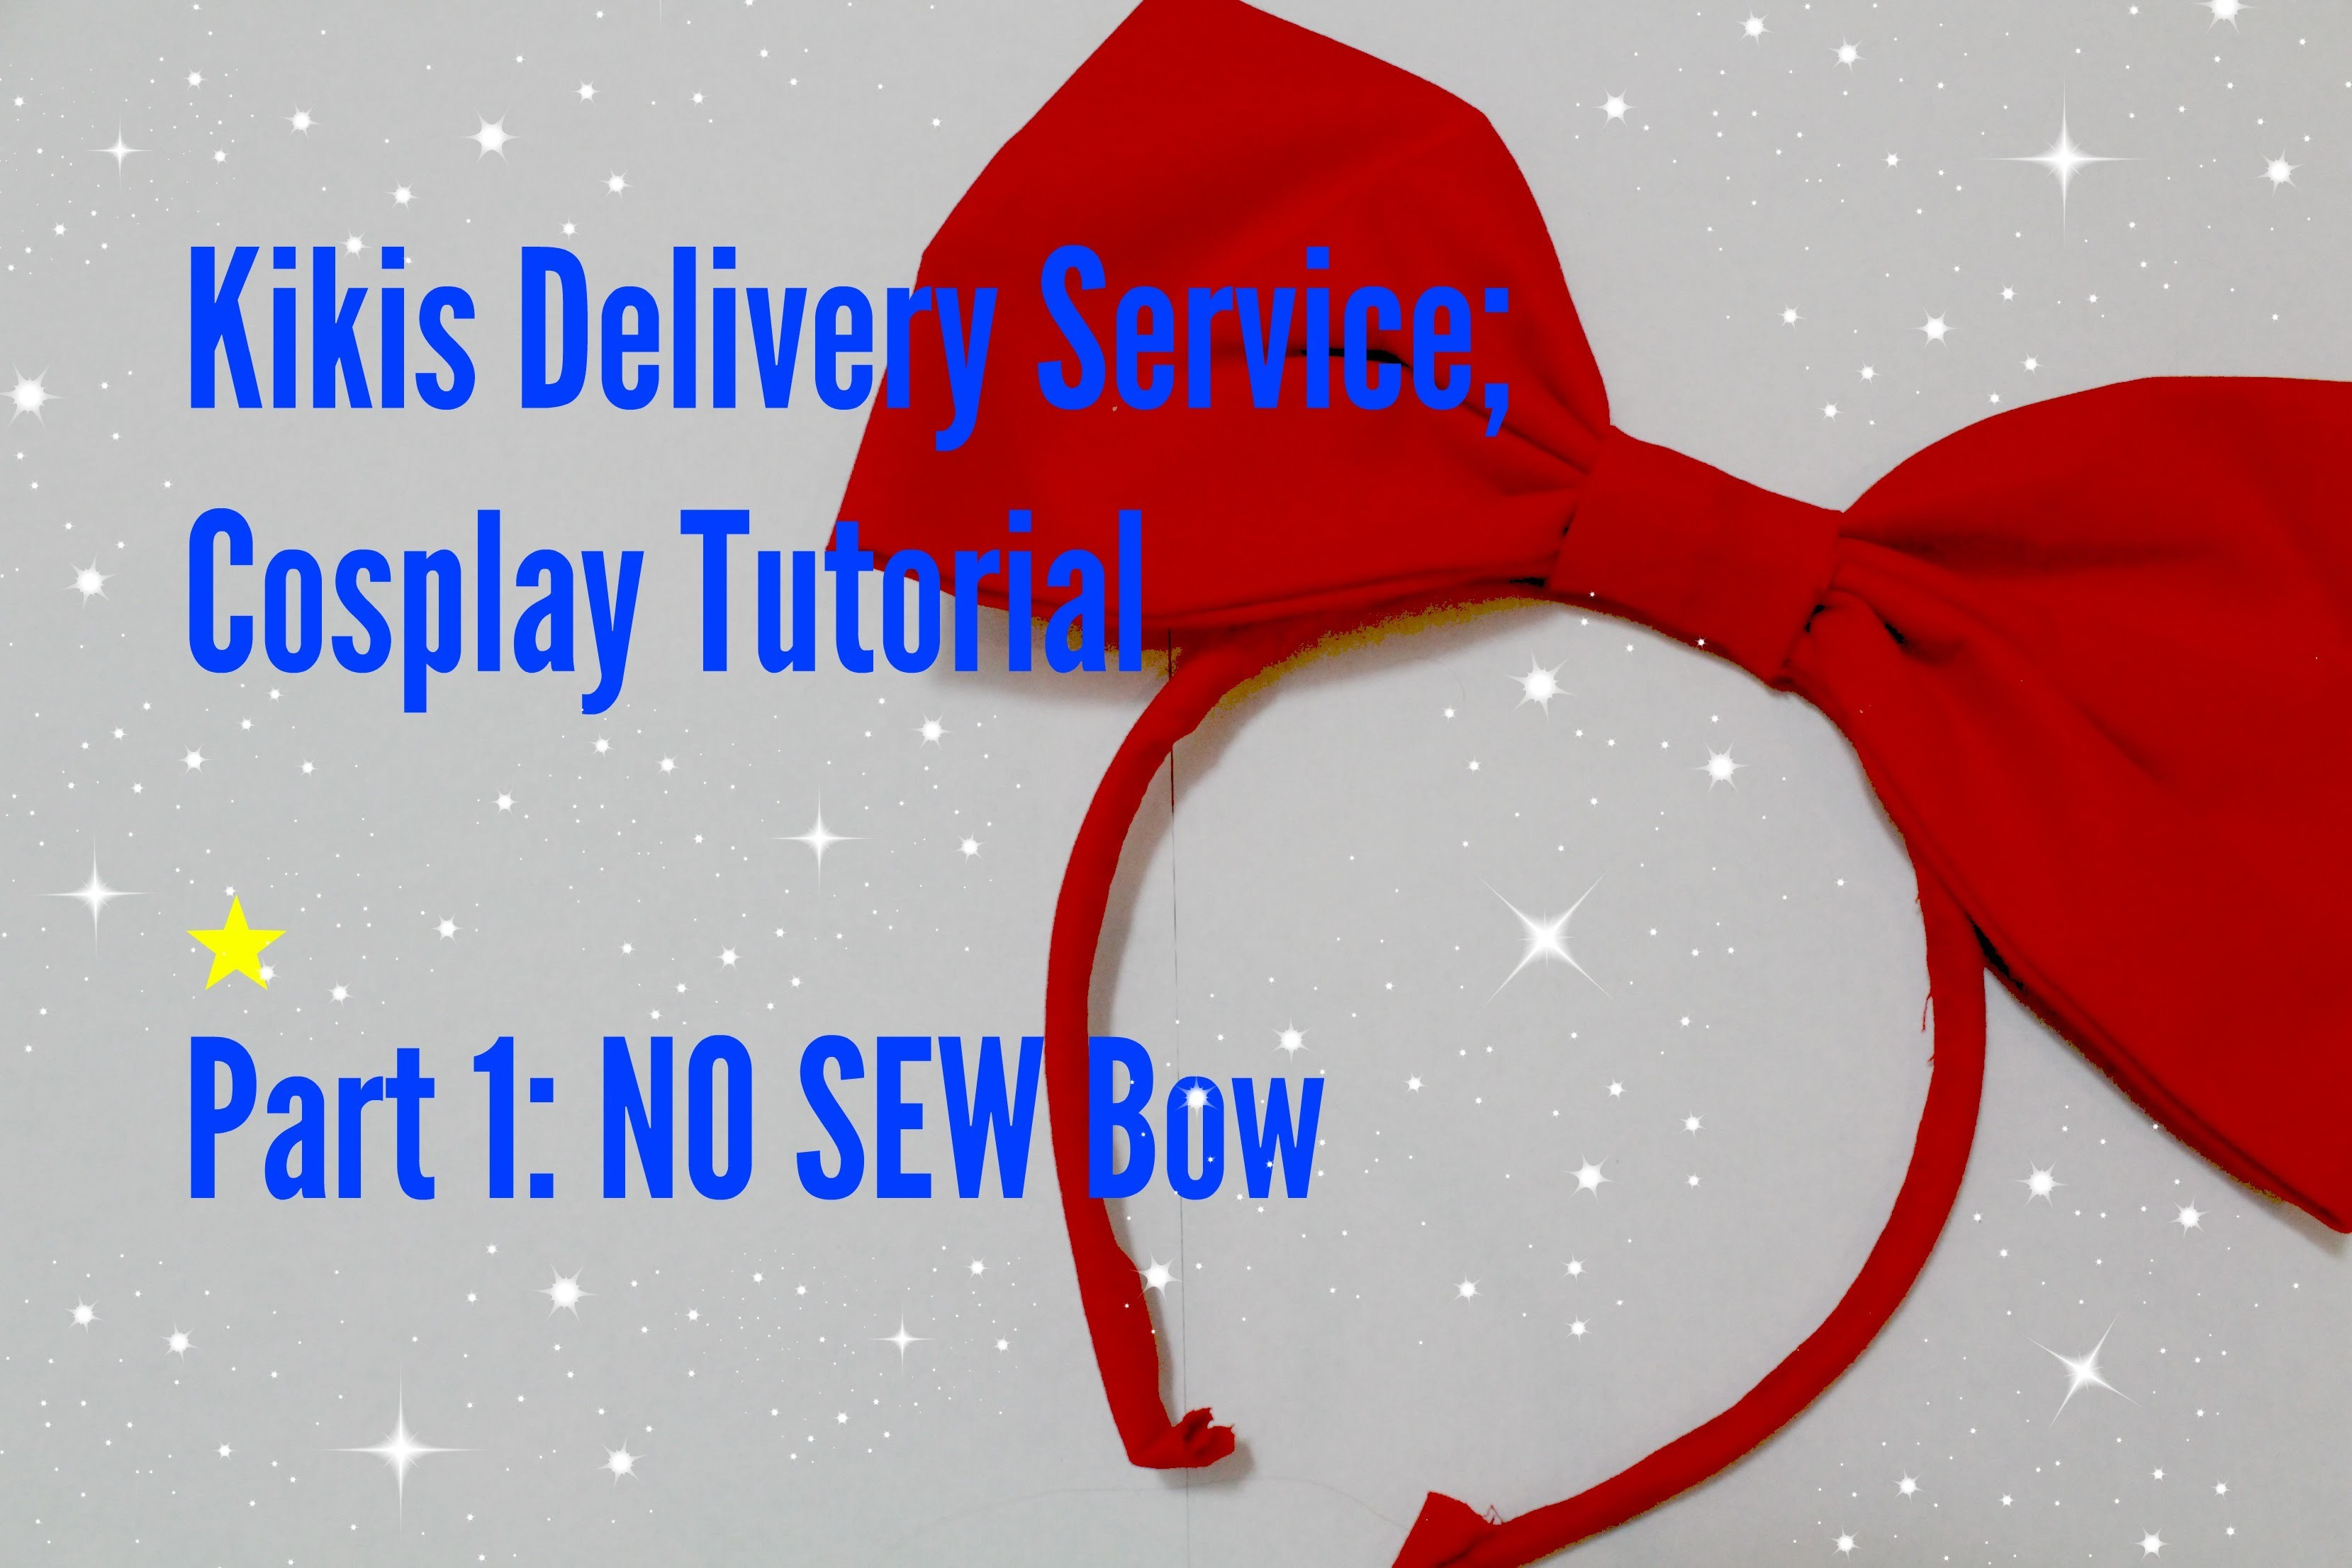 COSPLAY TUTORIAL | Kiki's Delivery Service | Part 1: The Bow | NO SEW